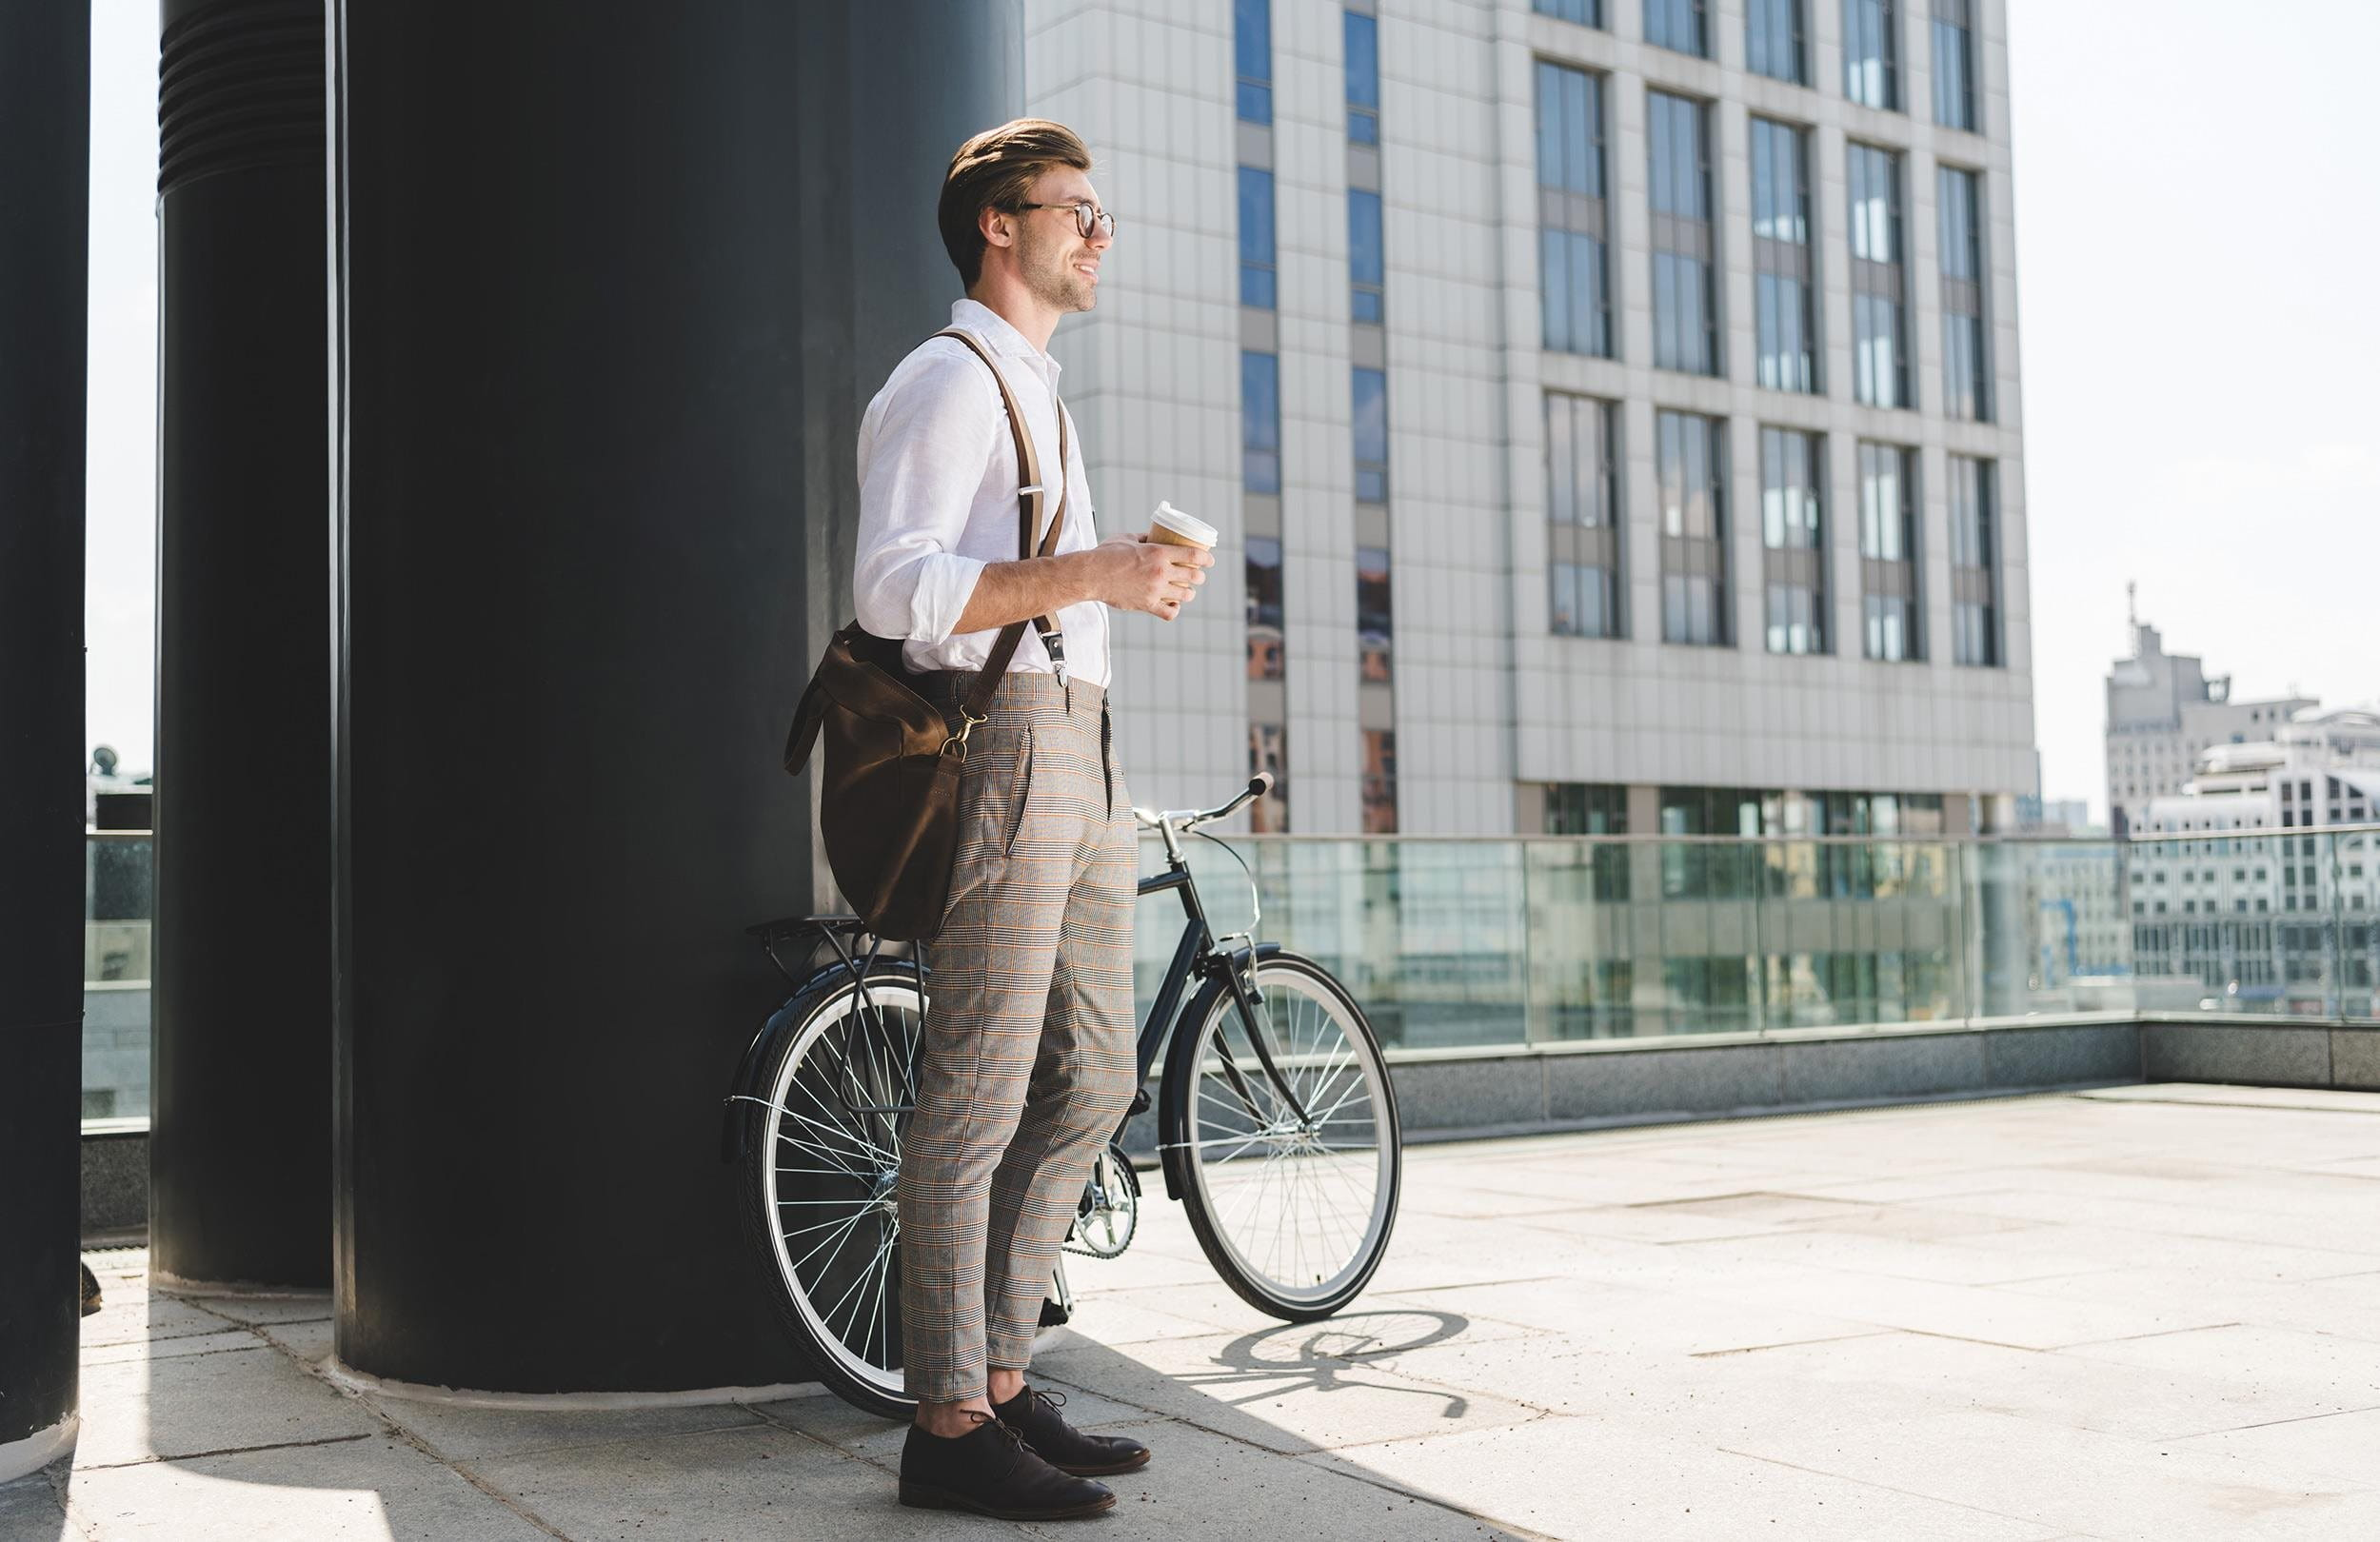 Young man with bike and coffee